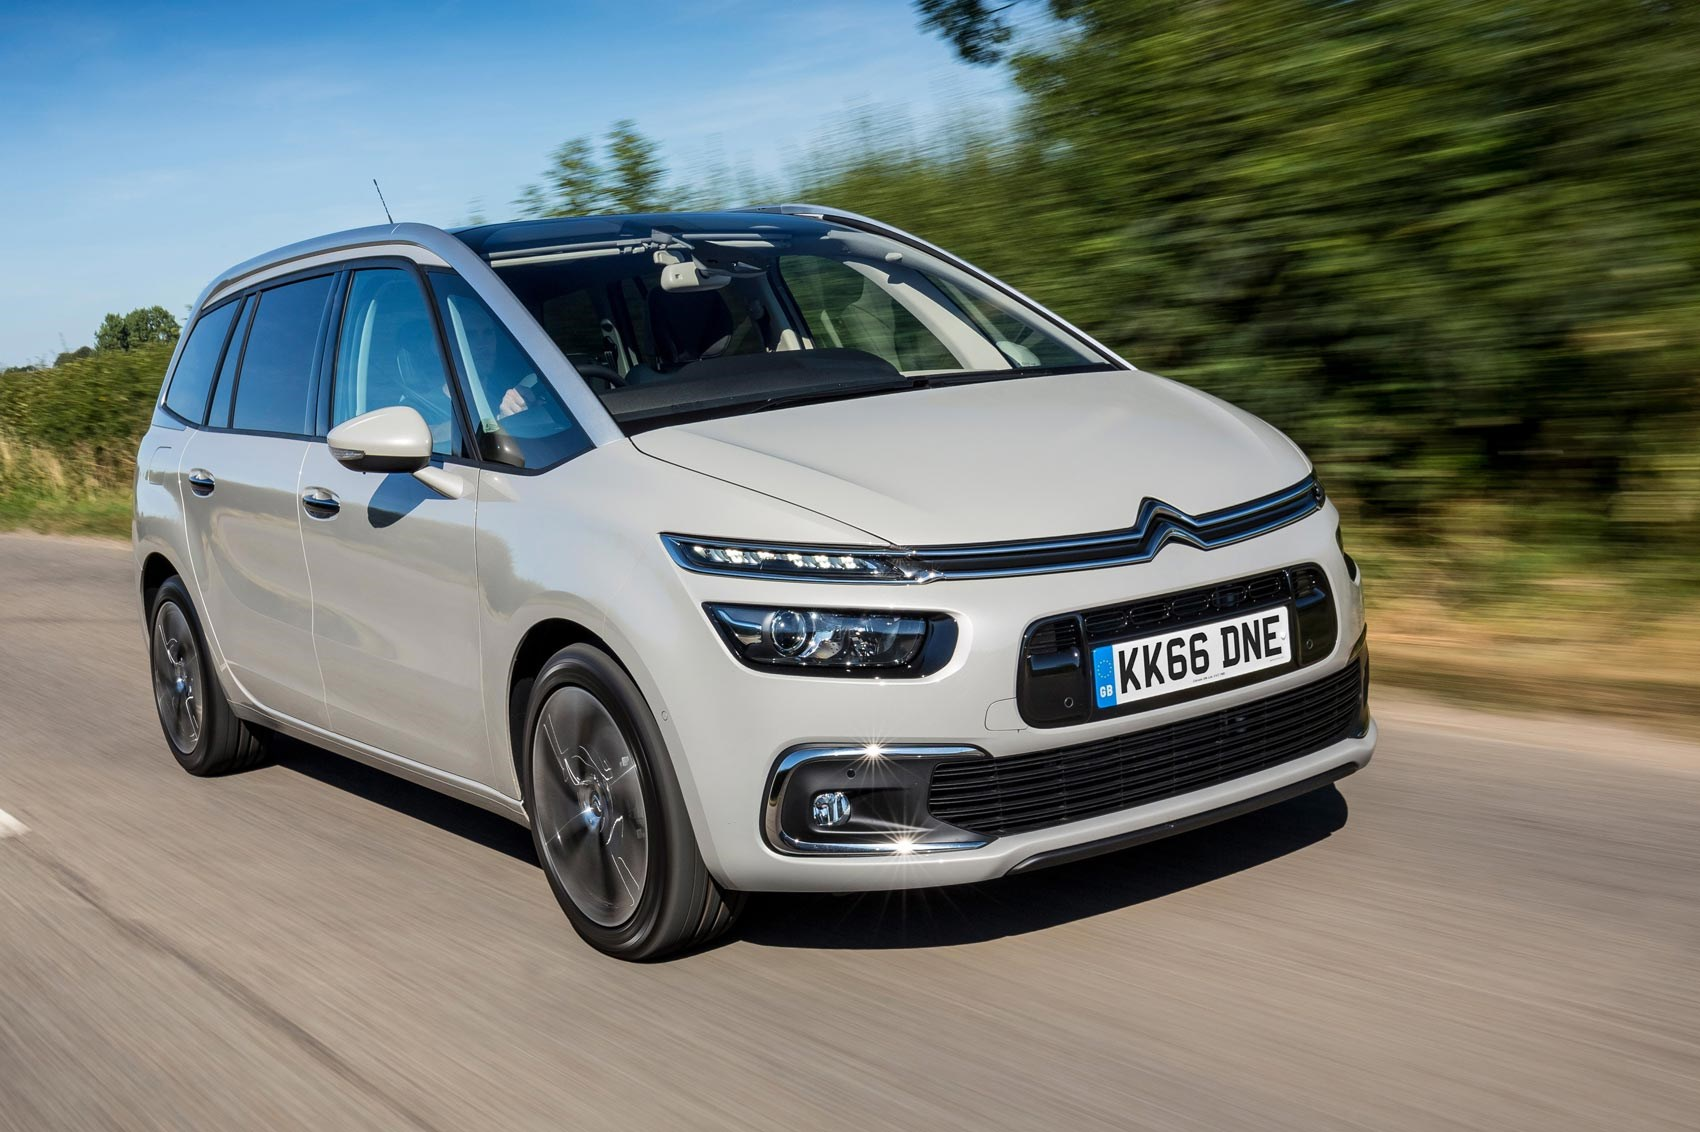 citroen grand c4 picasso flair bluehdi 150 2016 review by car magazine. Black Bedroom Furniture Sets. Home Design Ideas